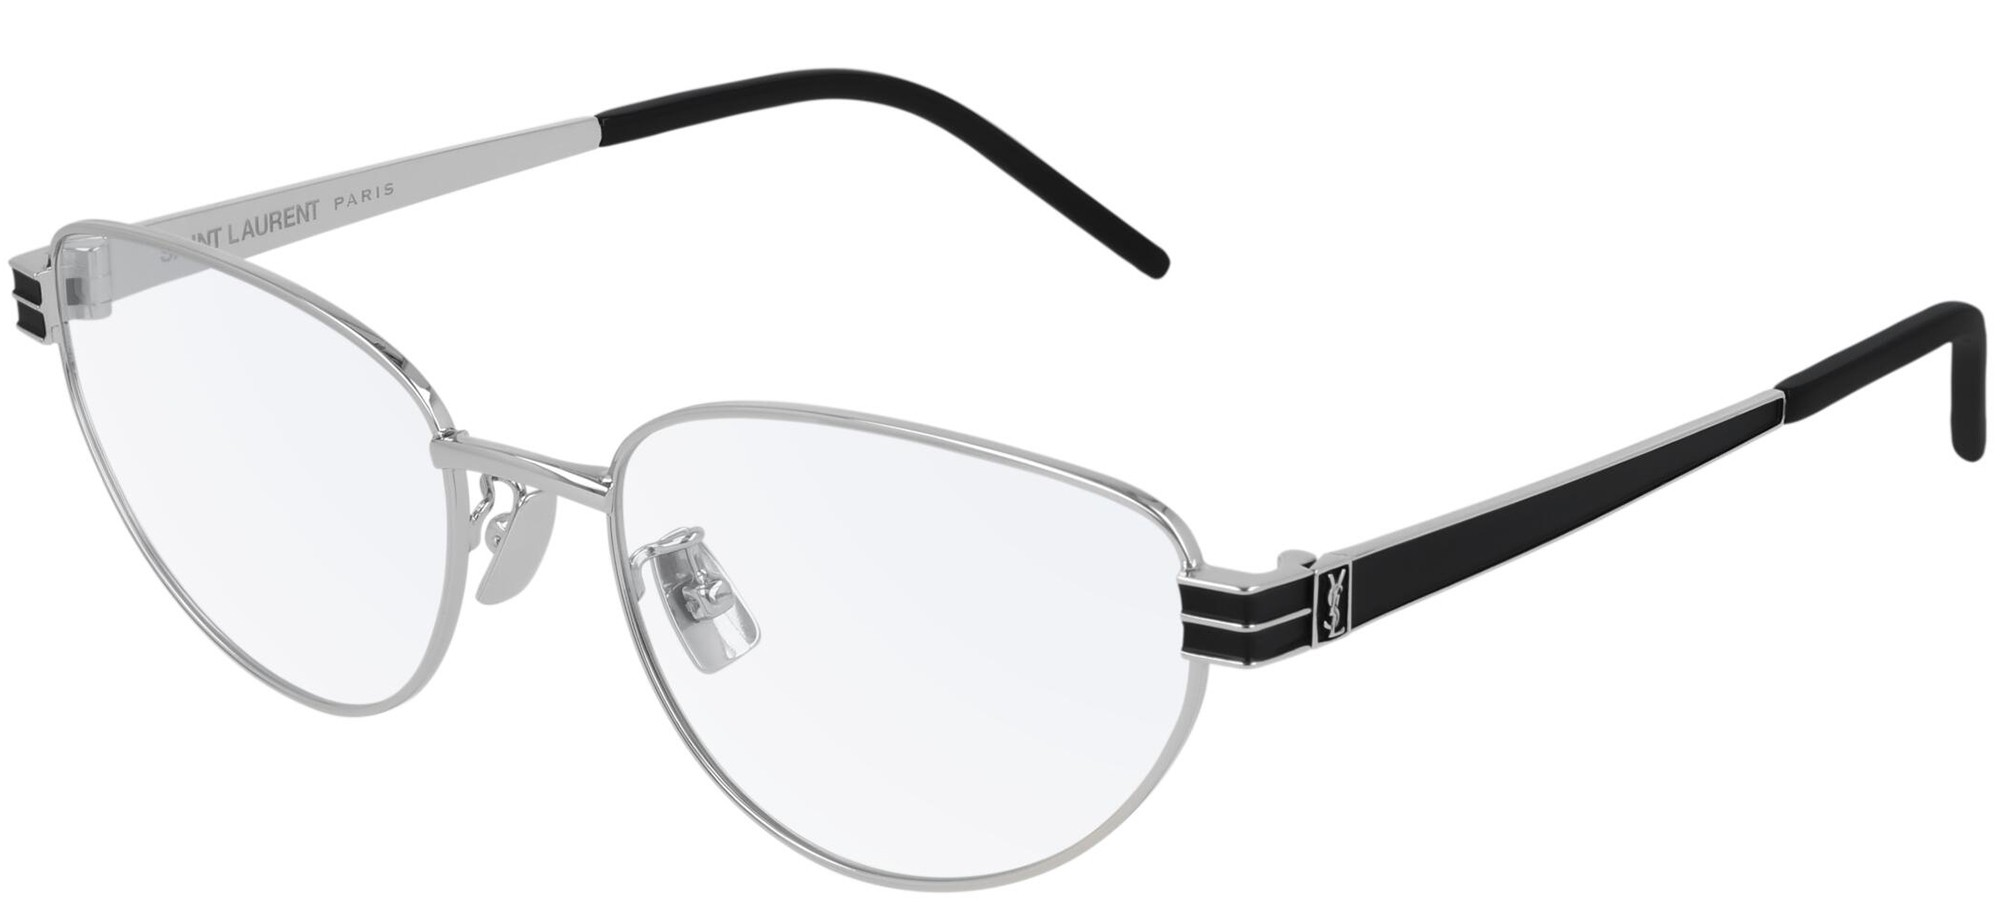 Saint Laurent SL M52